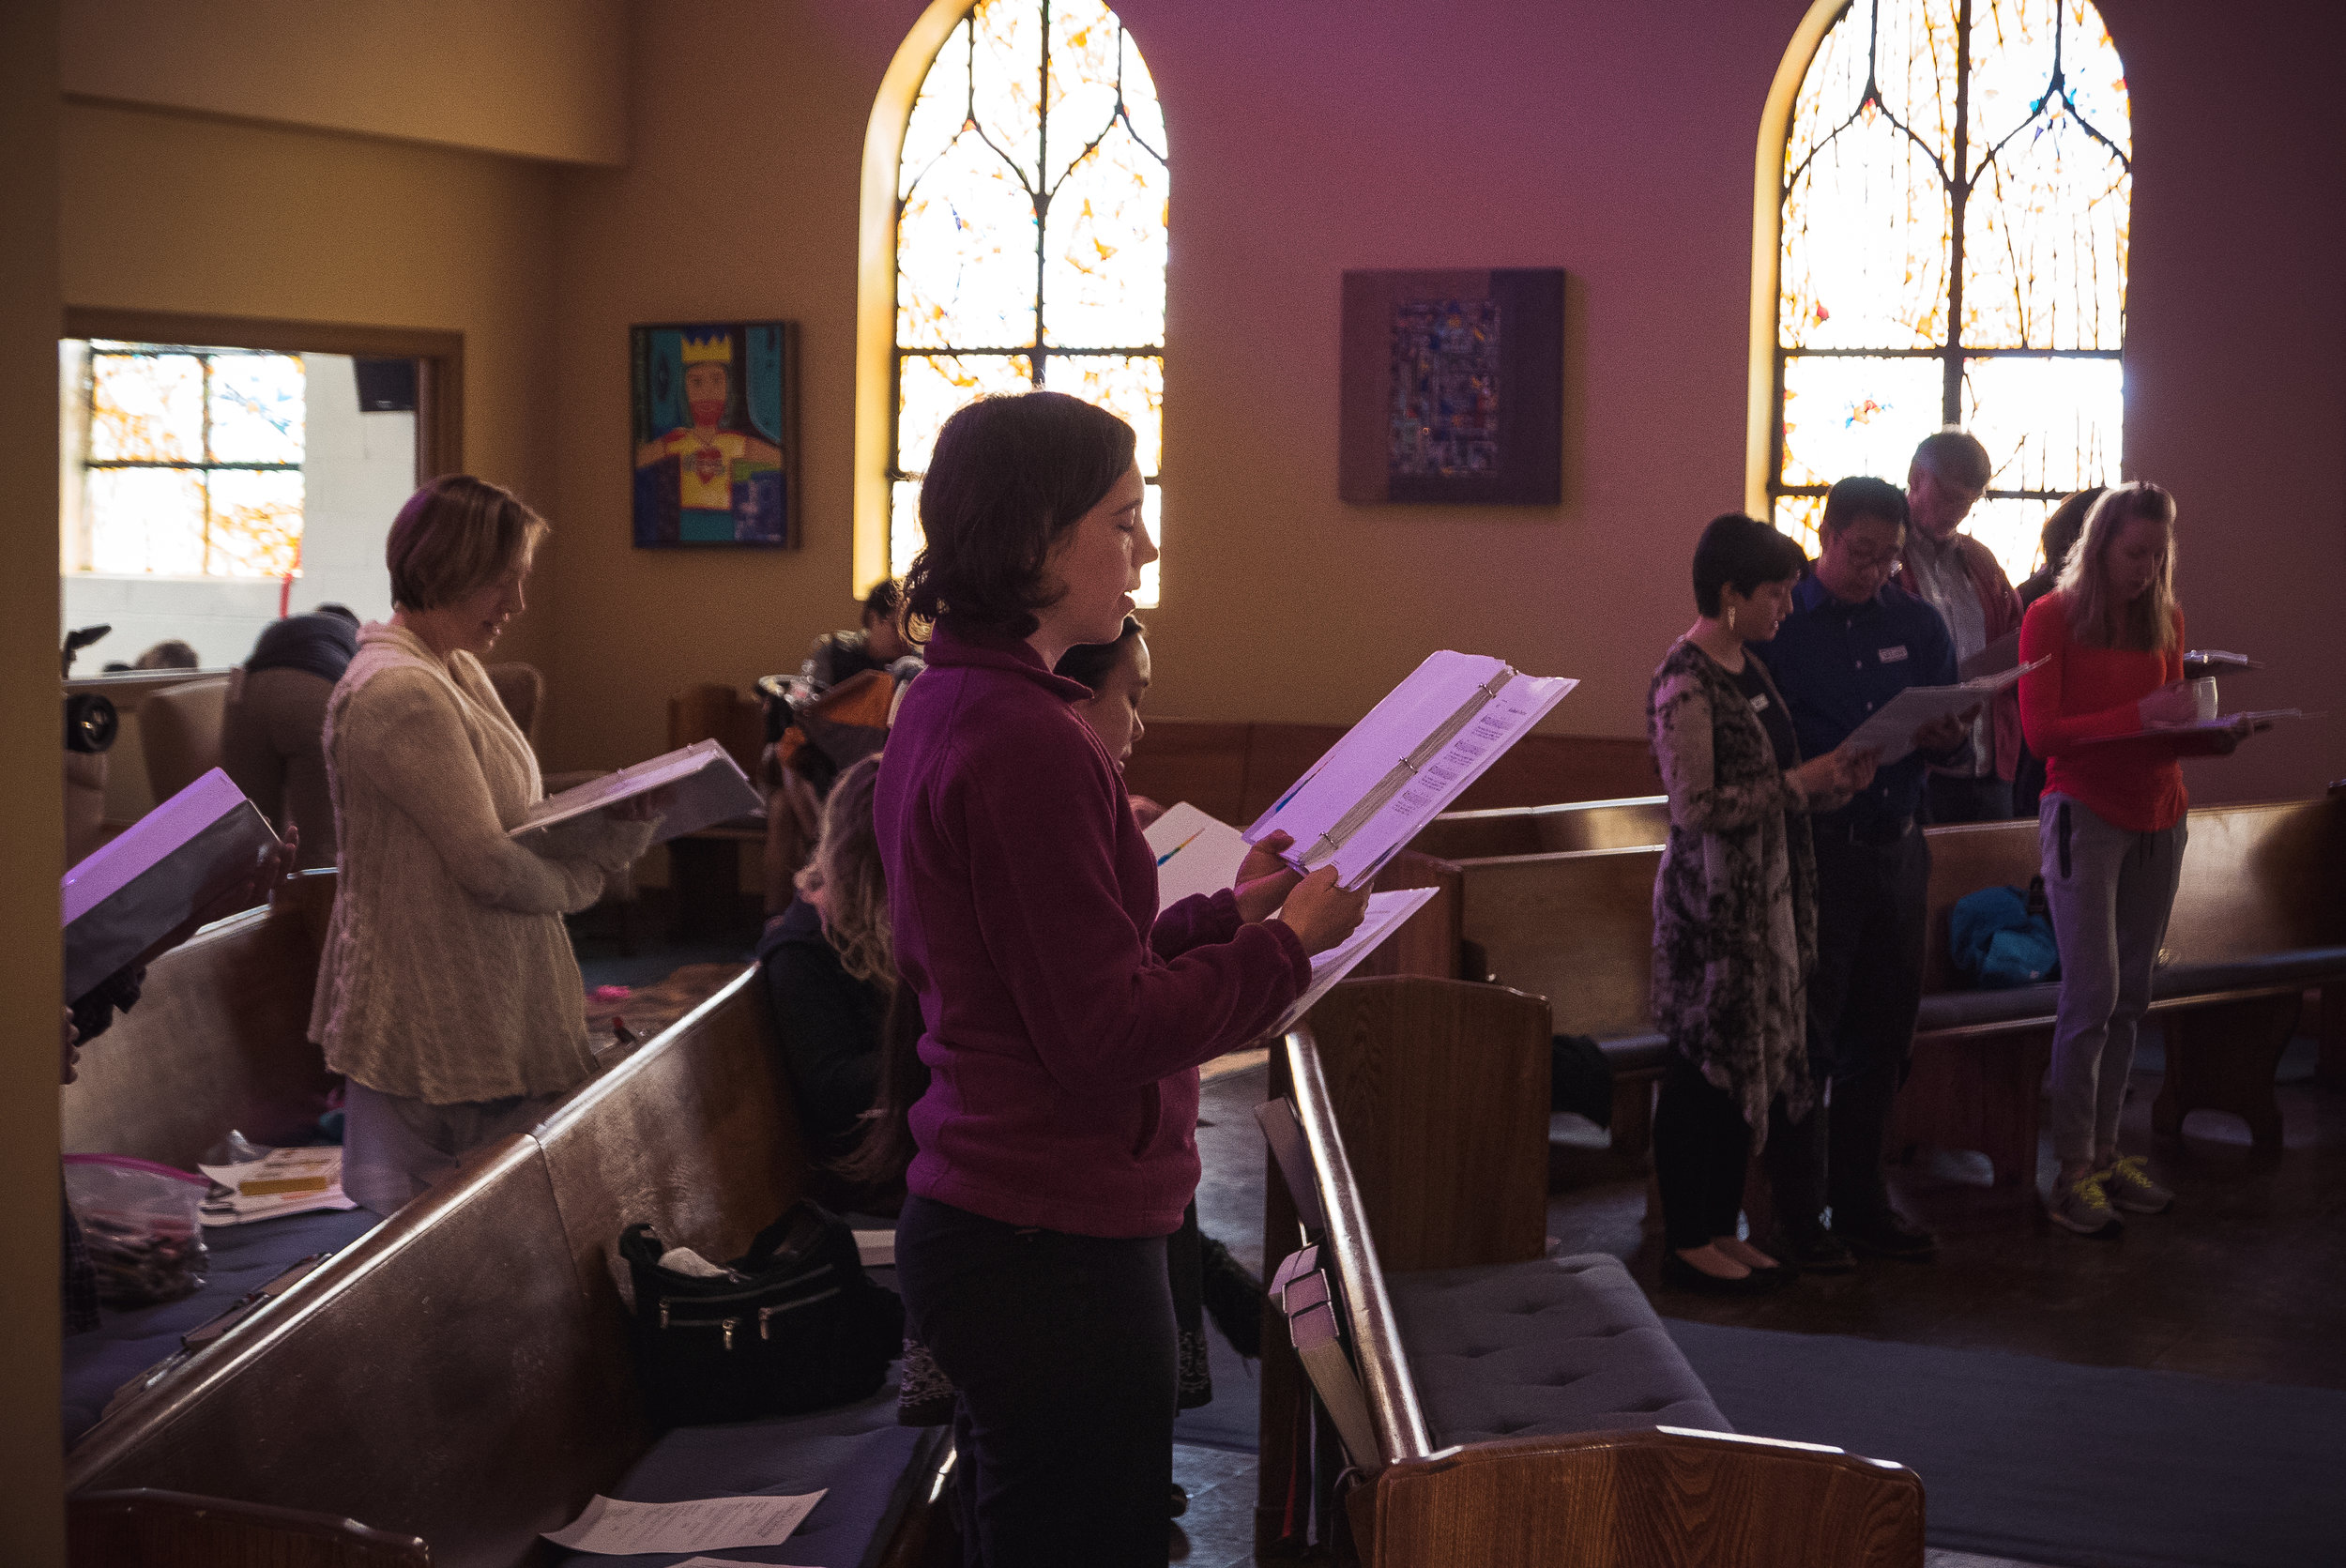 The congregation singing during worship service at Columbia City Church of Hope in Seattle, WA.